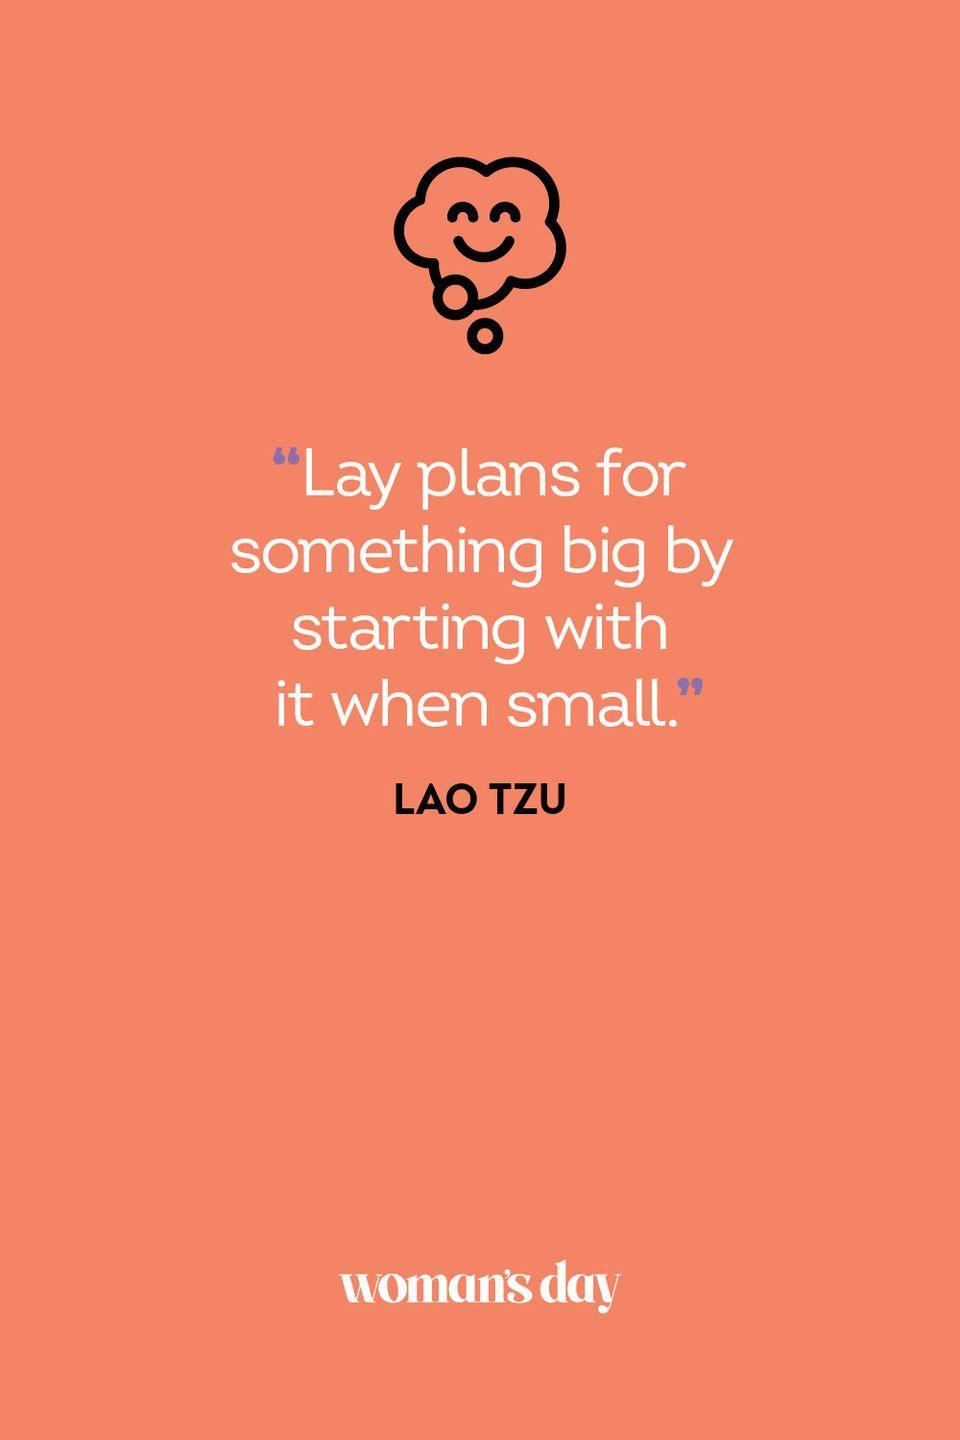 <p>Lay plans for something big by starting with it when small. </p>